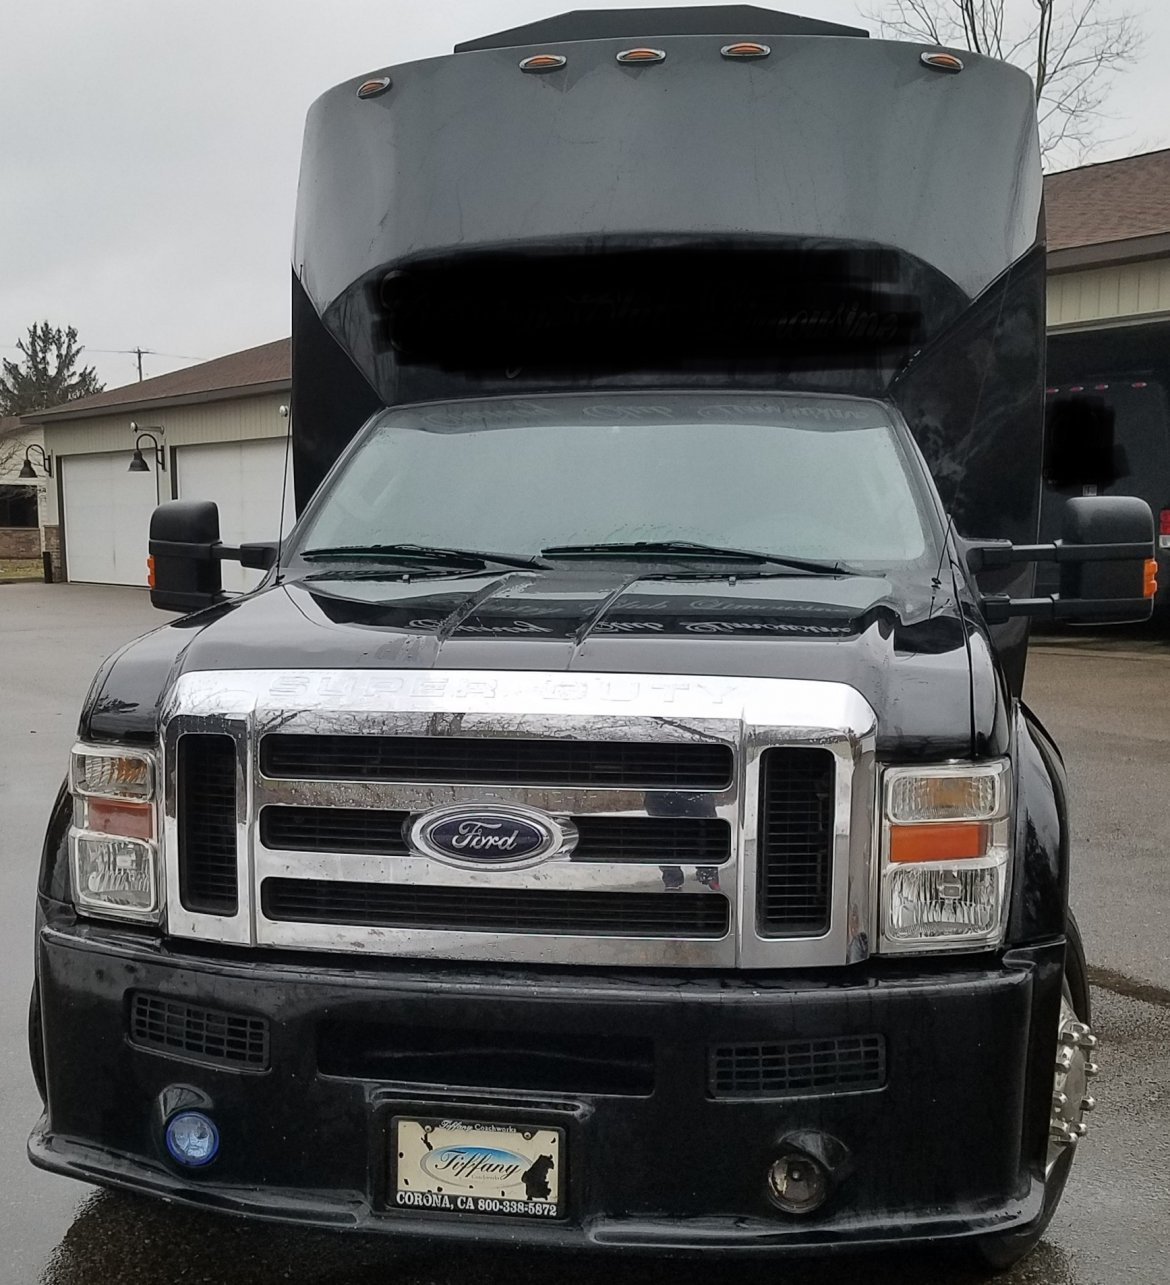 Limo Bus for sale: 2010 Ford F-550 by Tiffany